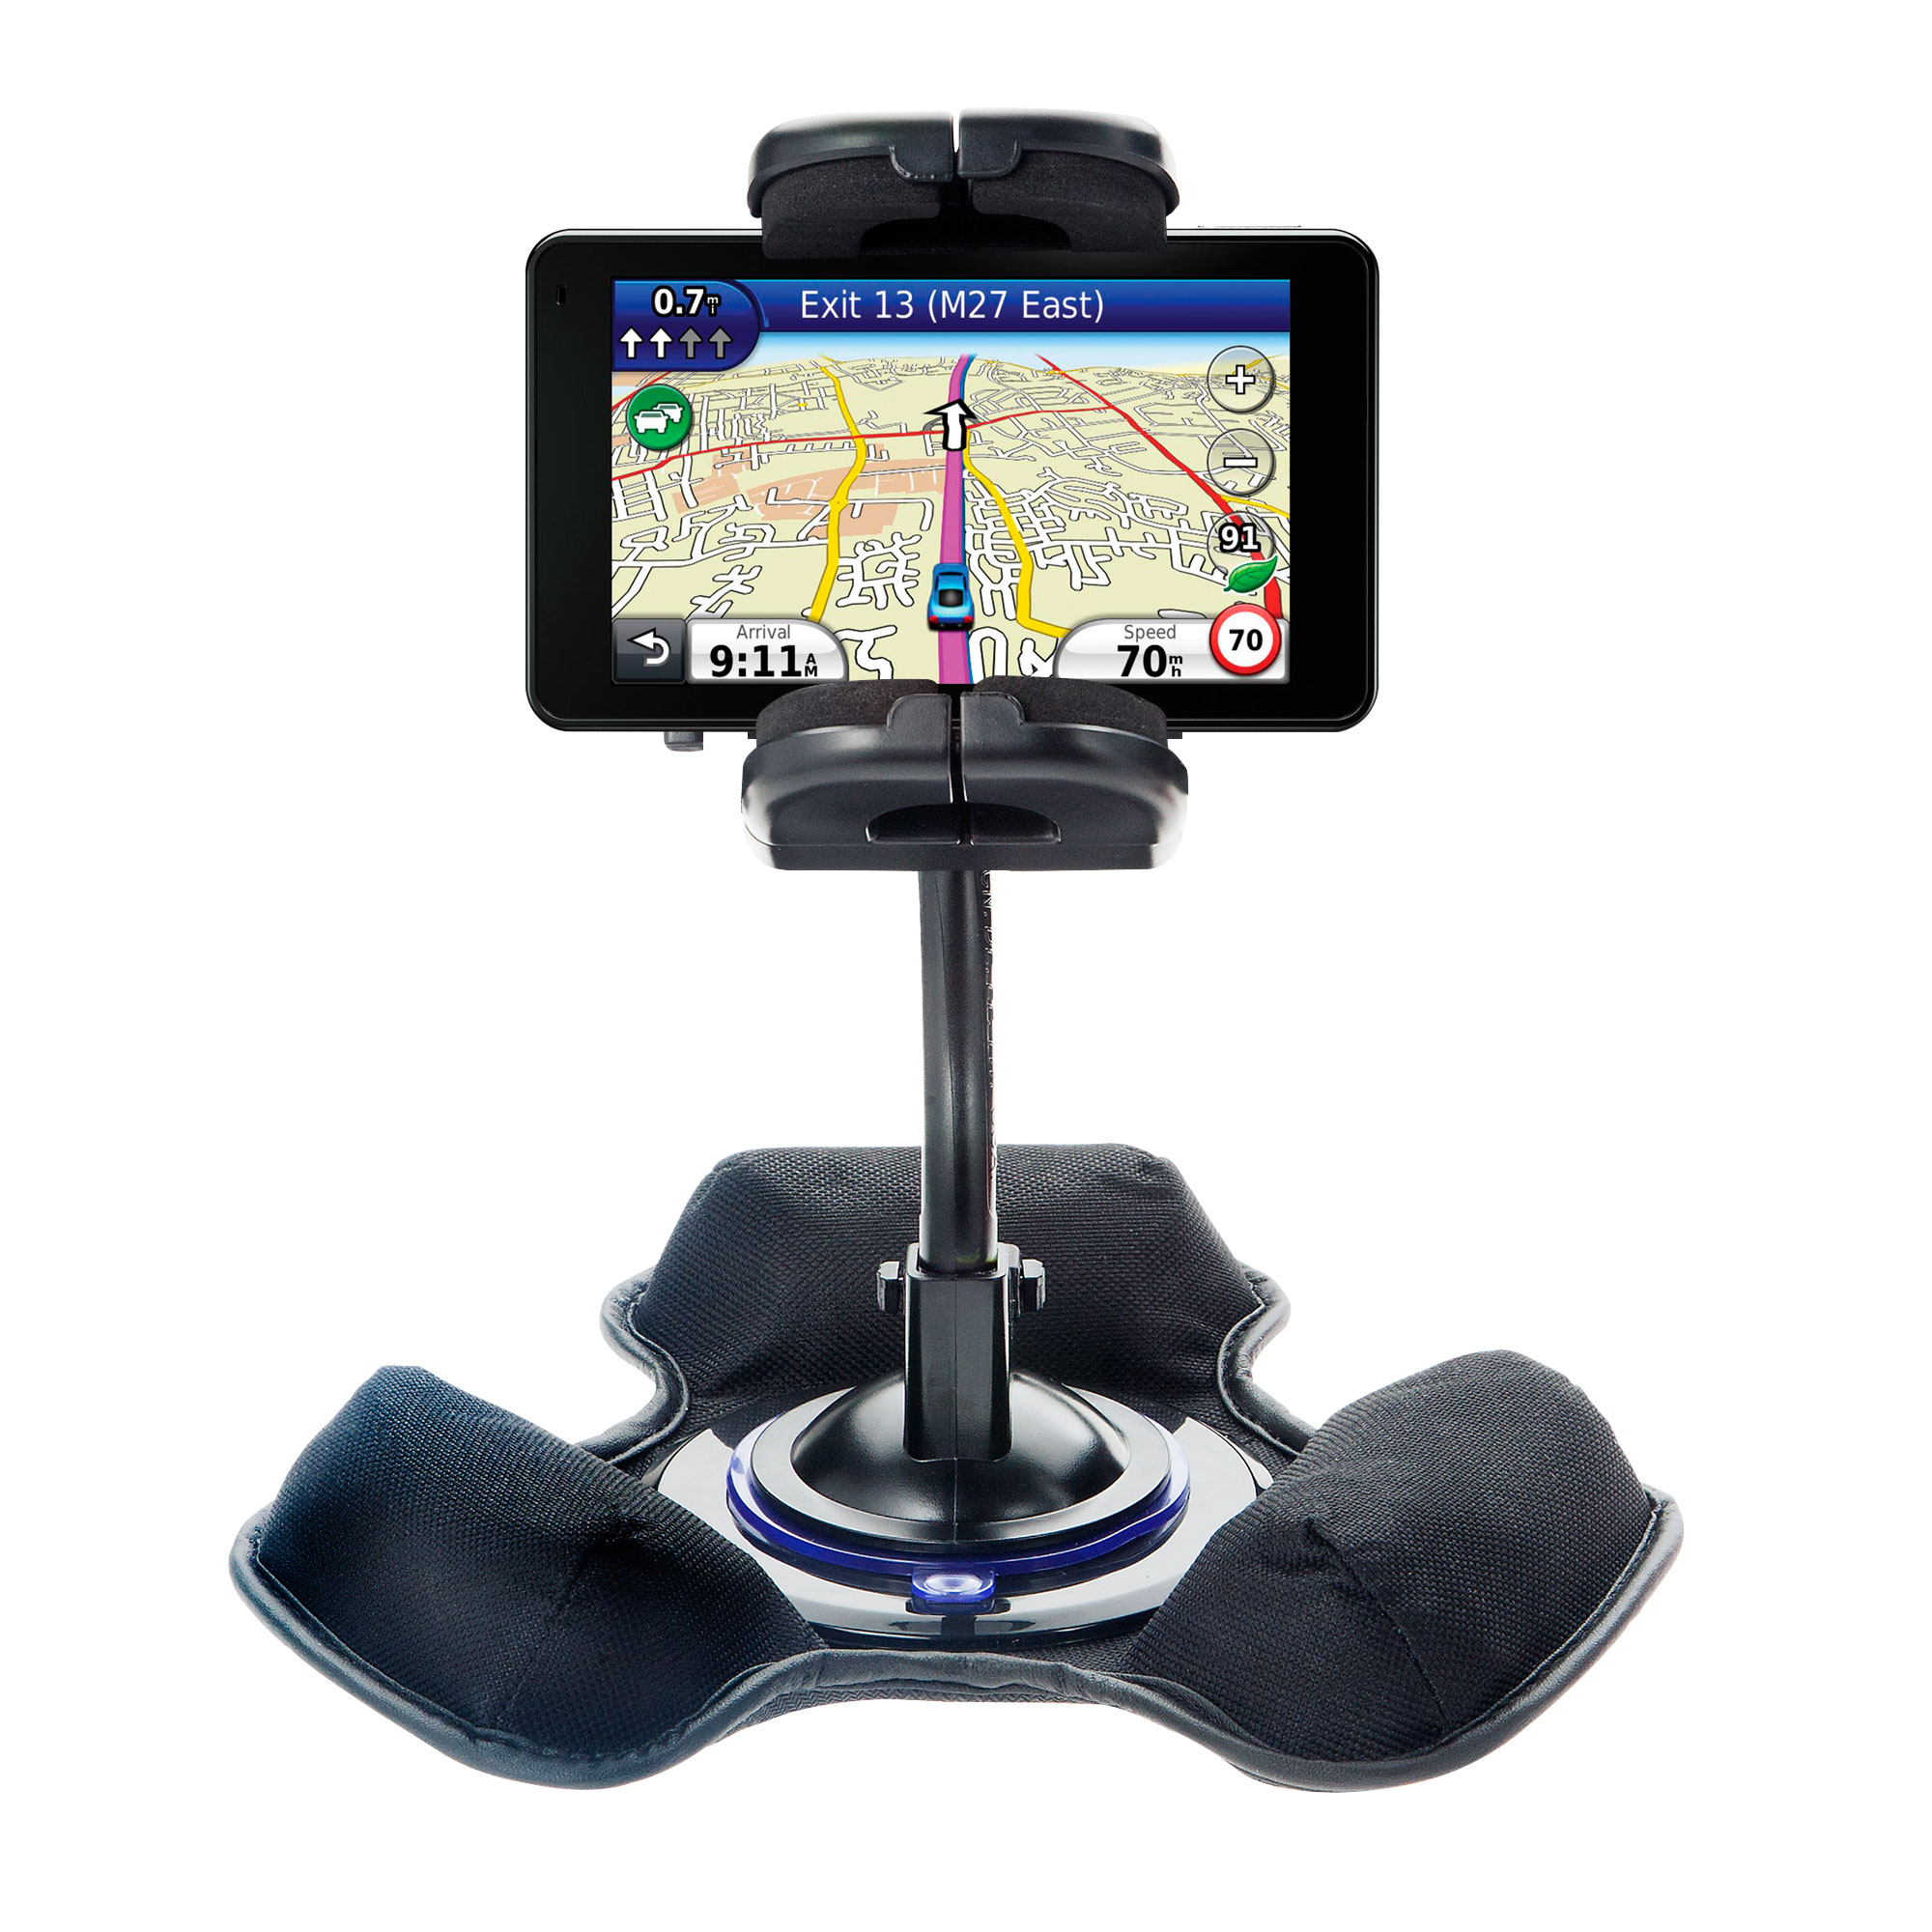 Dash and Windshield Holder compatible with the Garmin Nuvi 3750